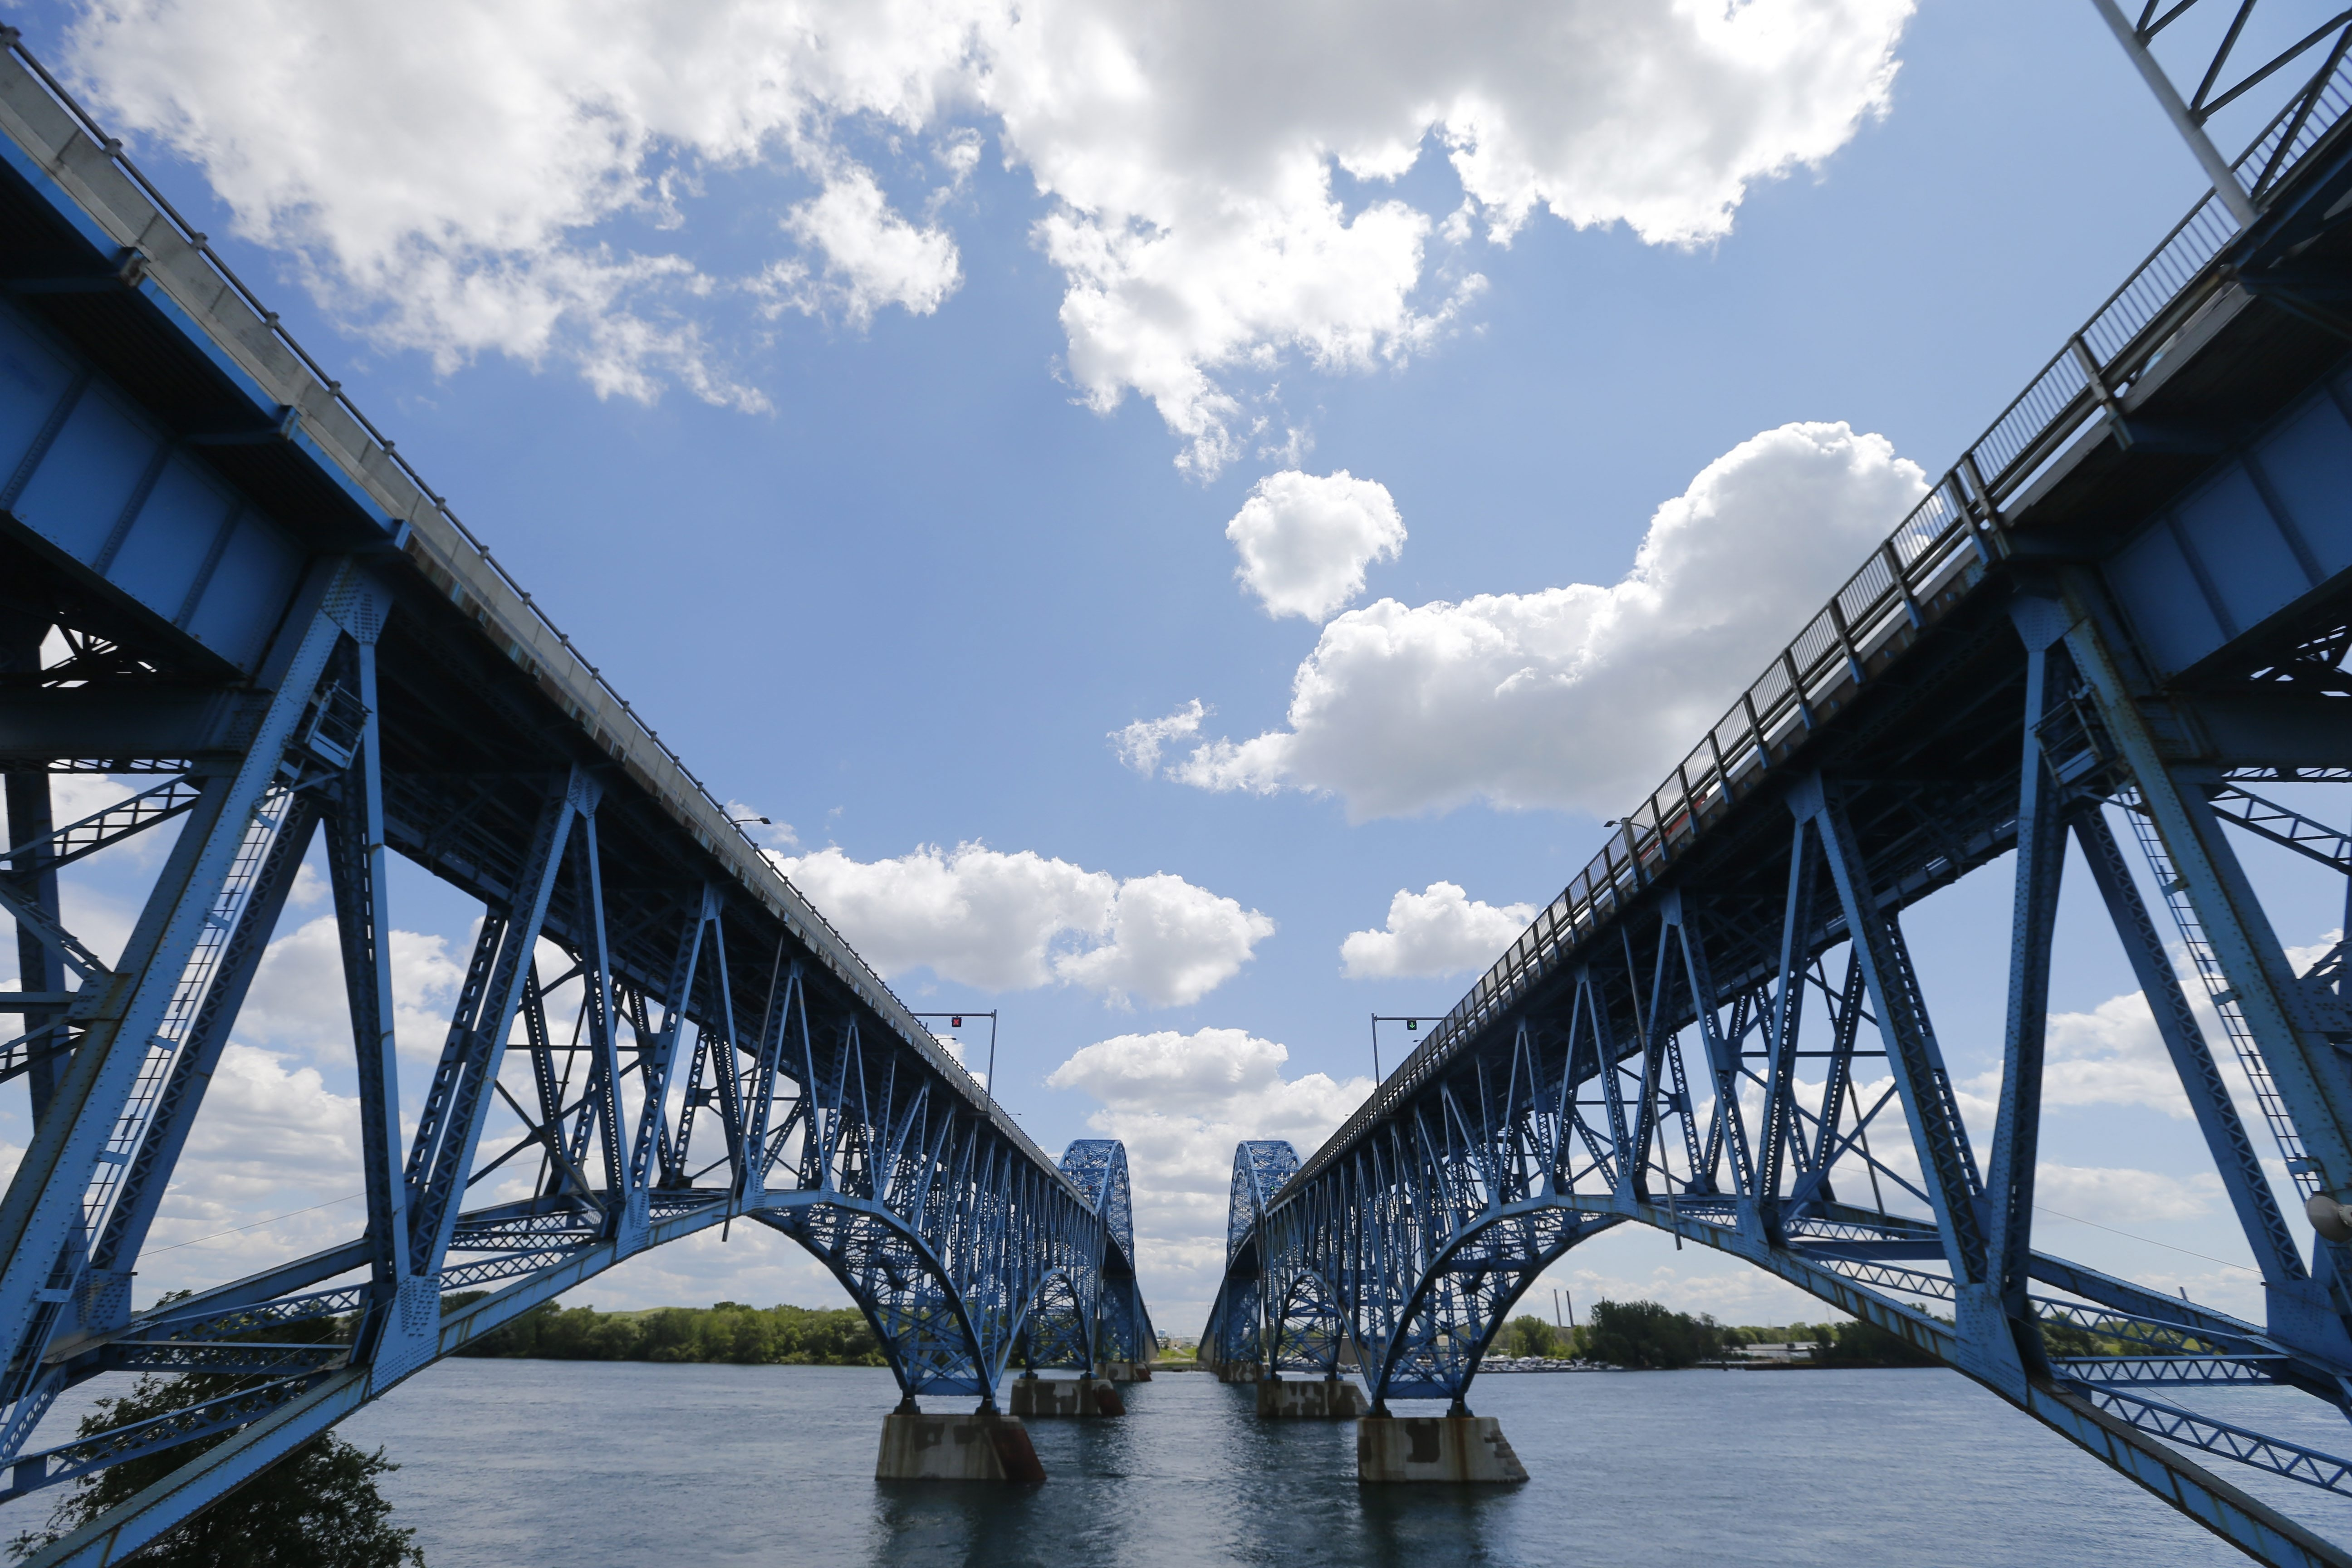 The toll barriers on the Grand Island bridges slow travel and impede business while sending revenue across the state. (Mark Mulville/Buffalo News file photo)